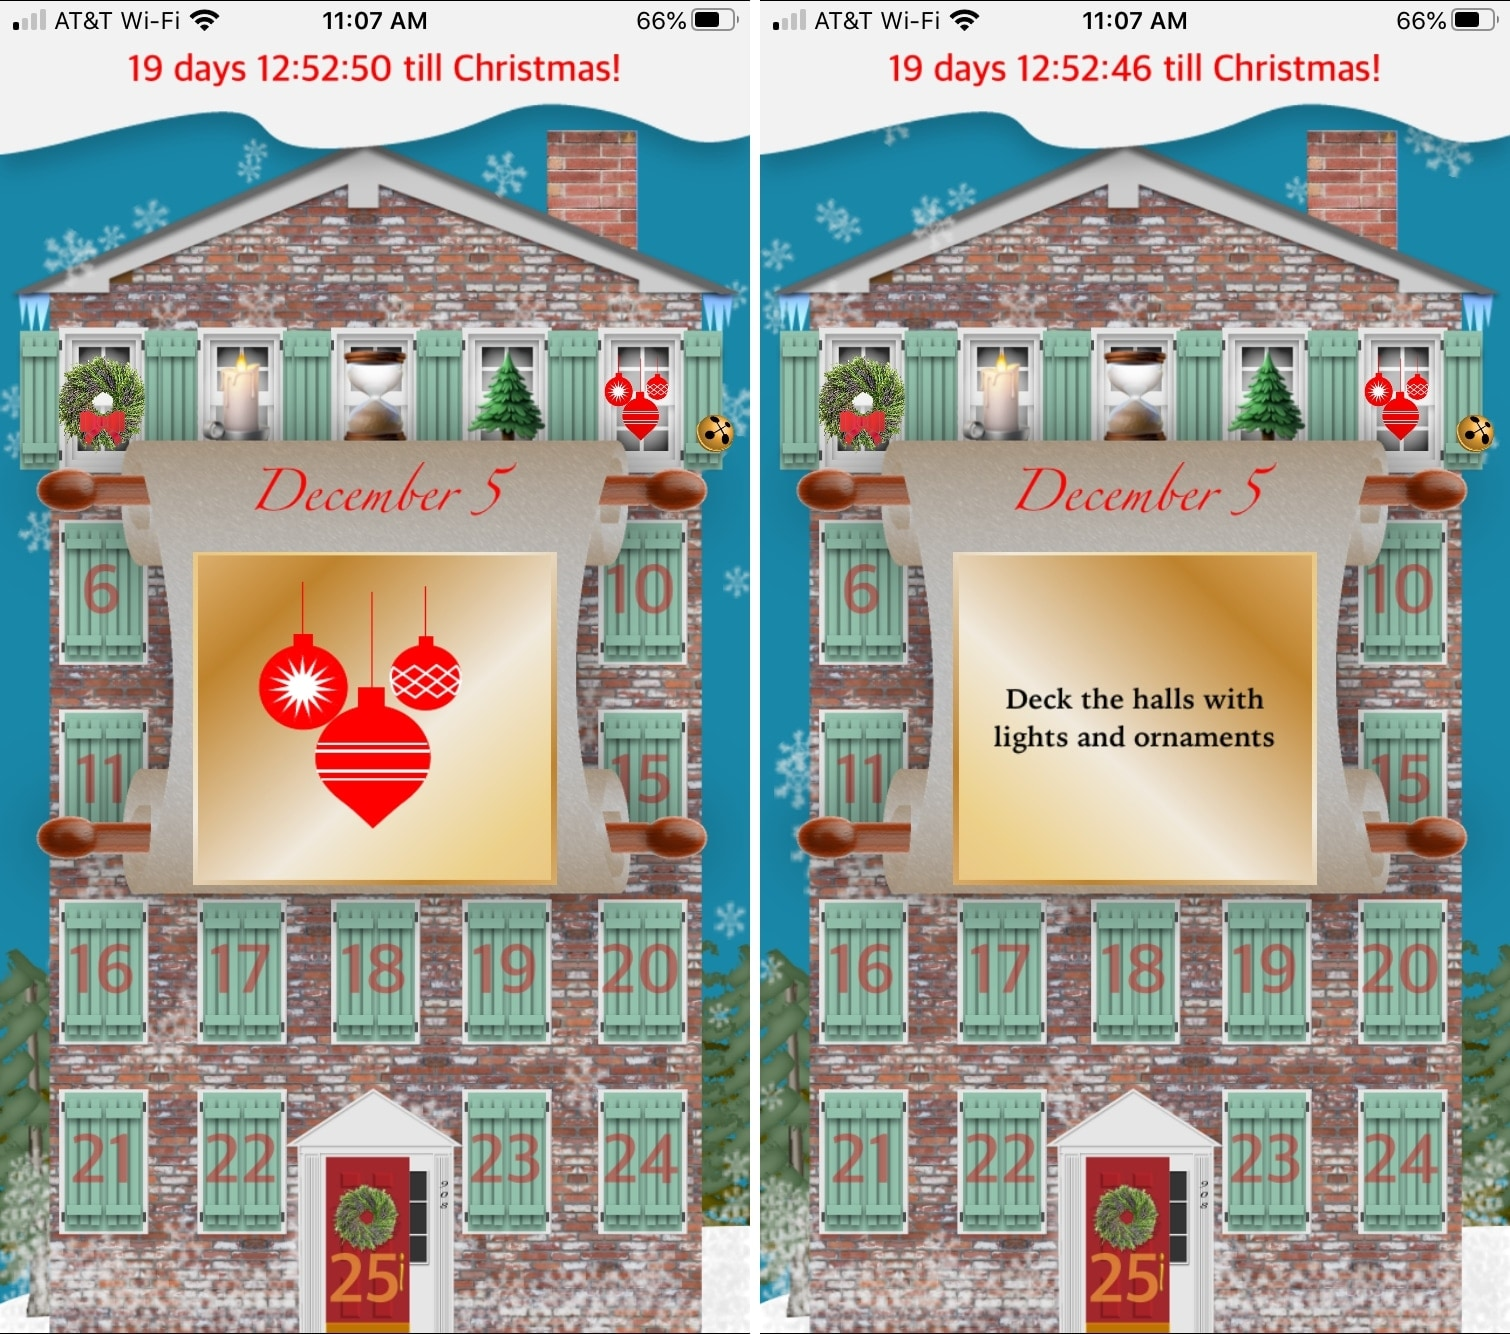 Advent Calendar iPhone Apps